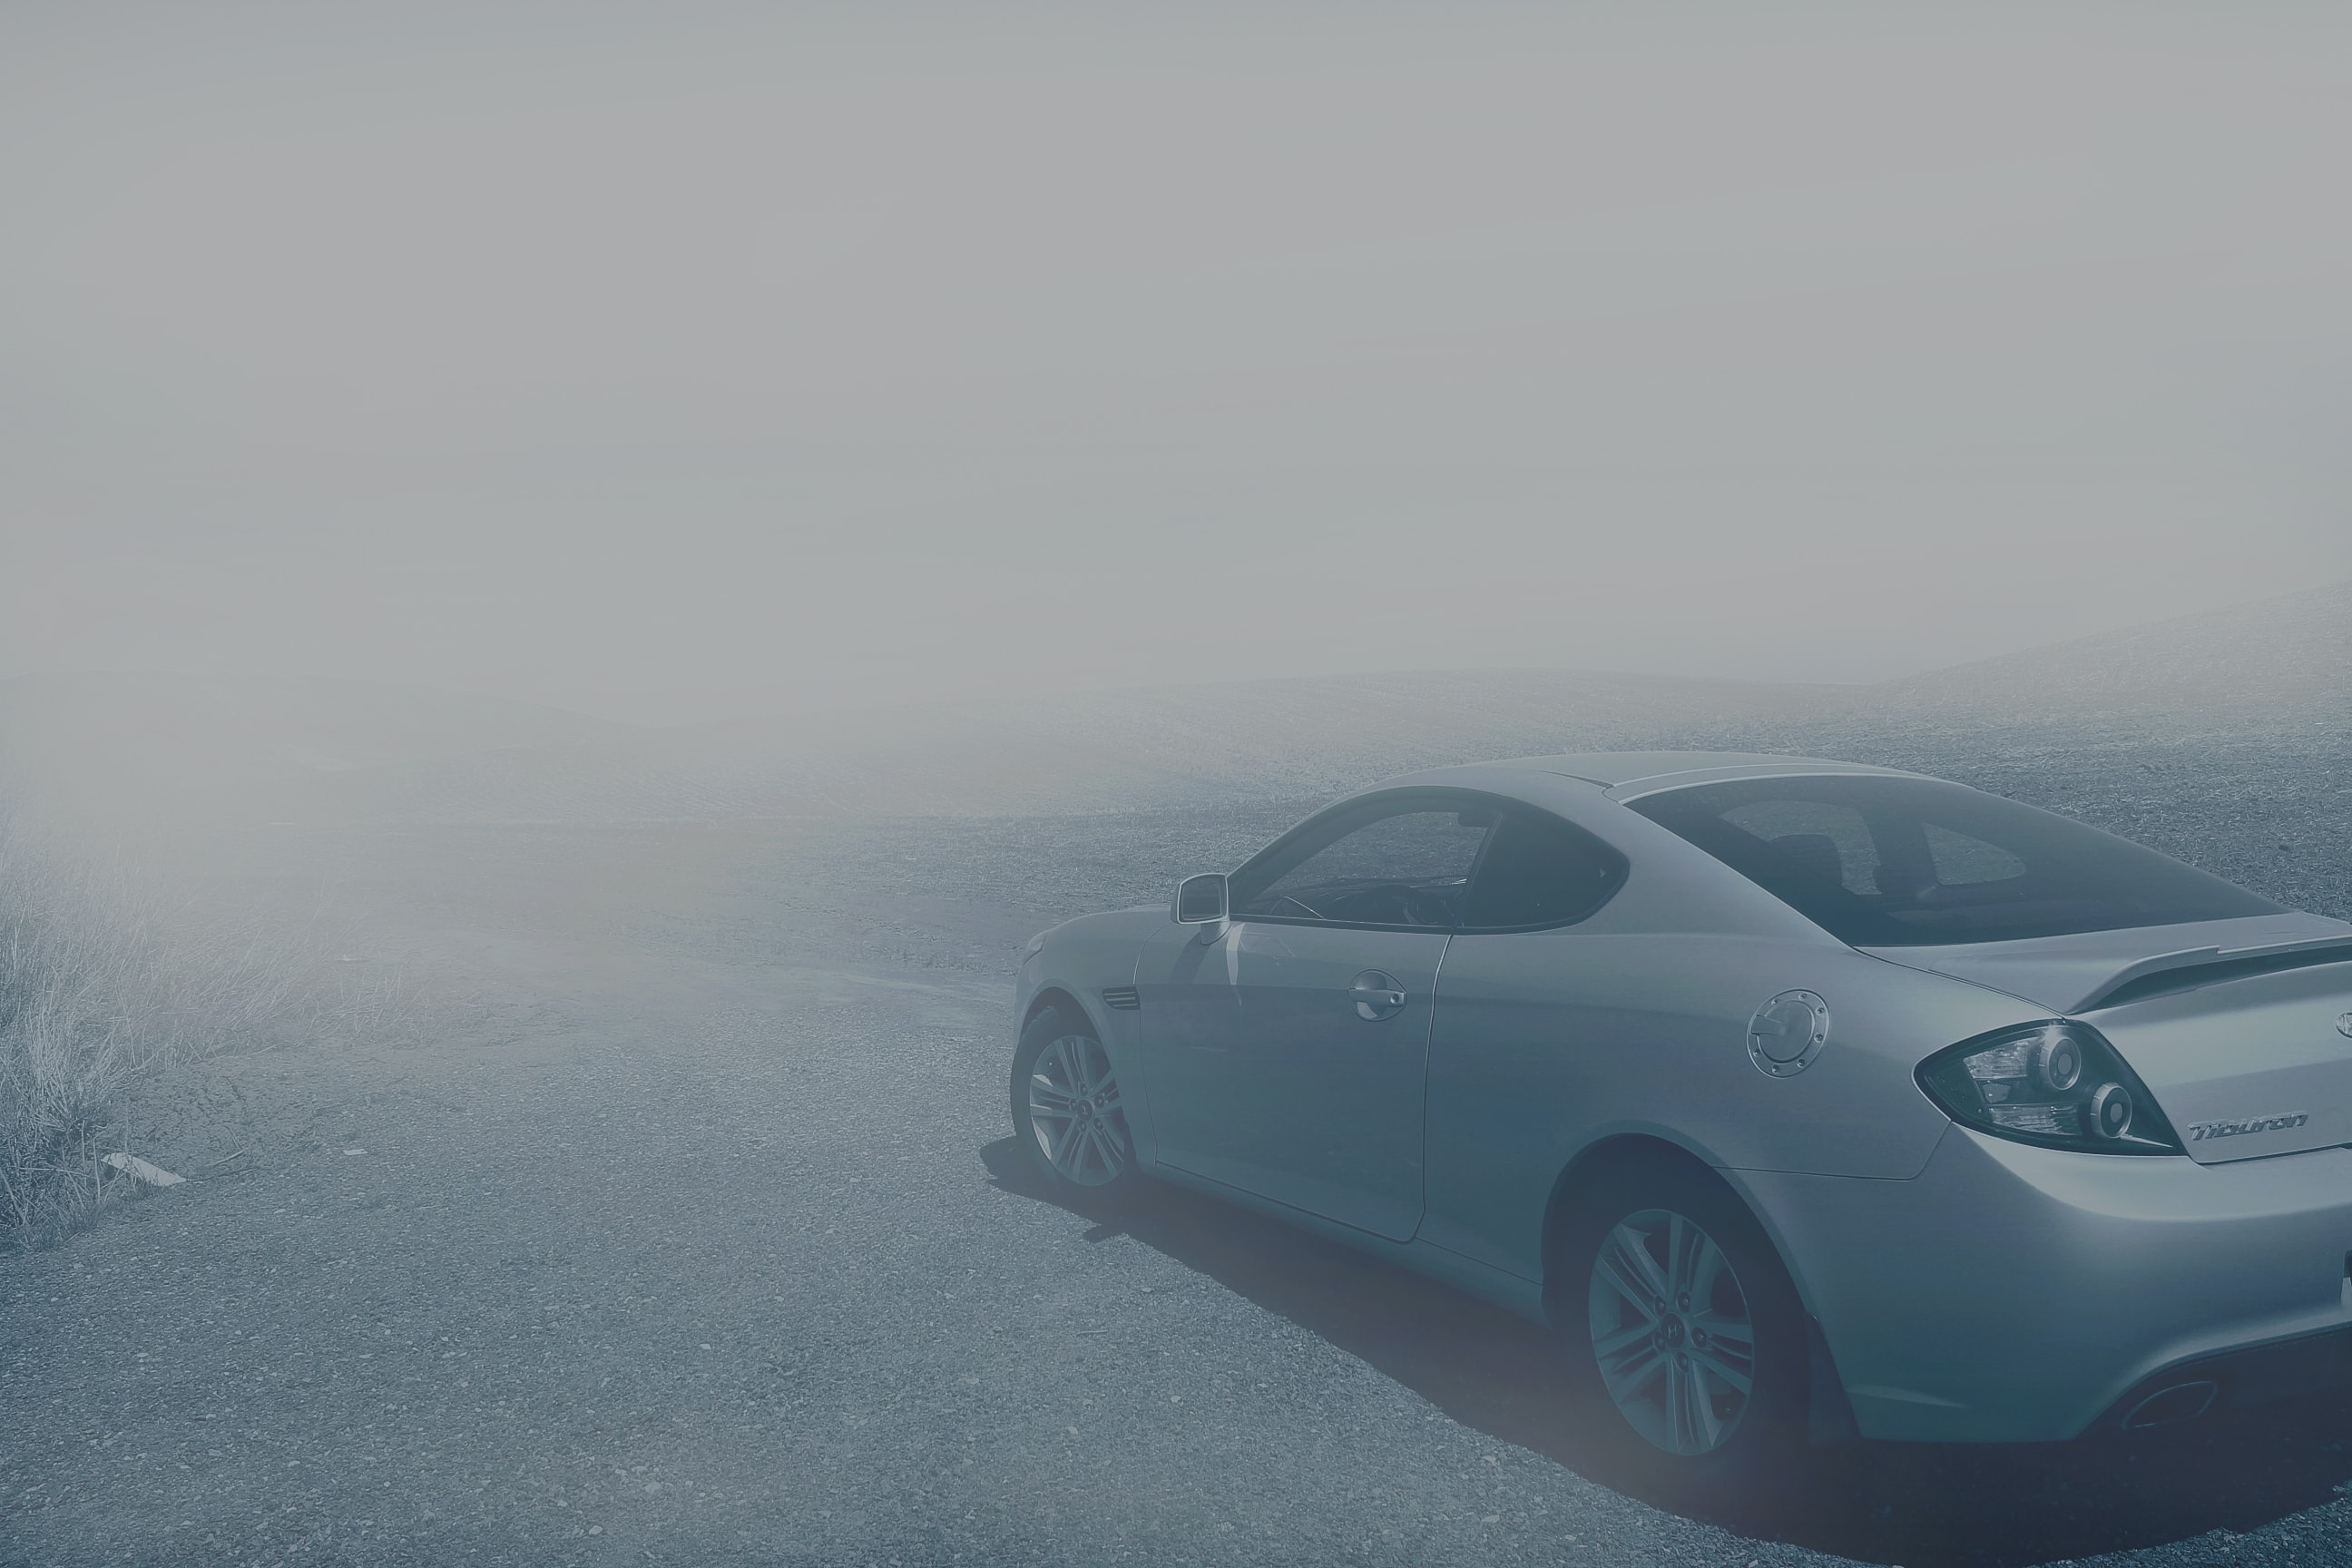 A sports car surrounded by fog in a barren landscape